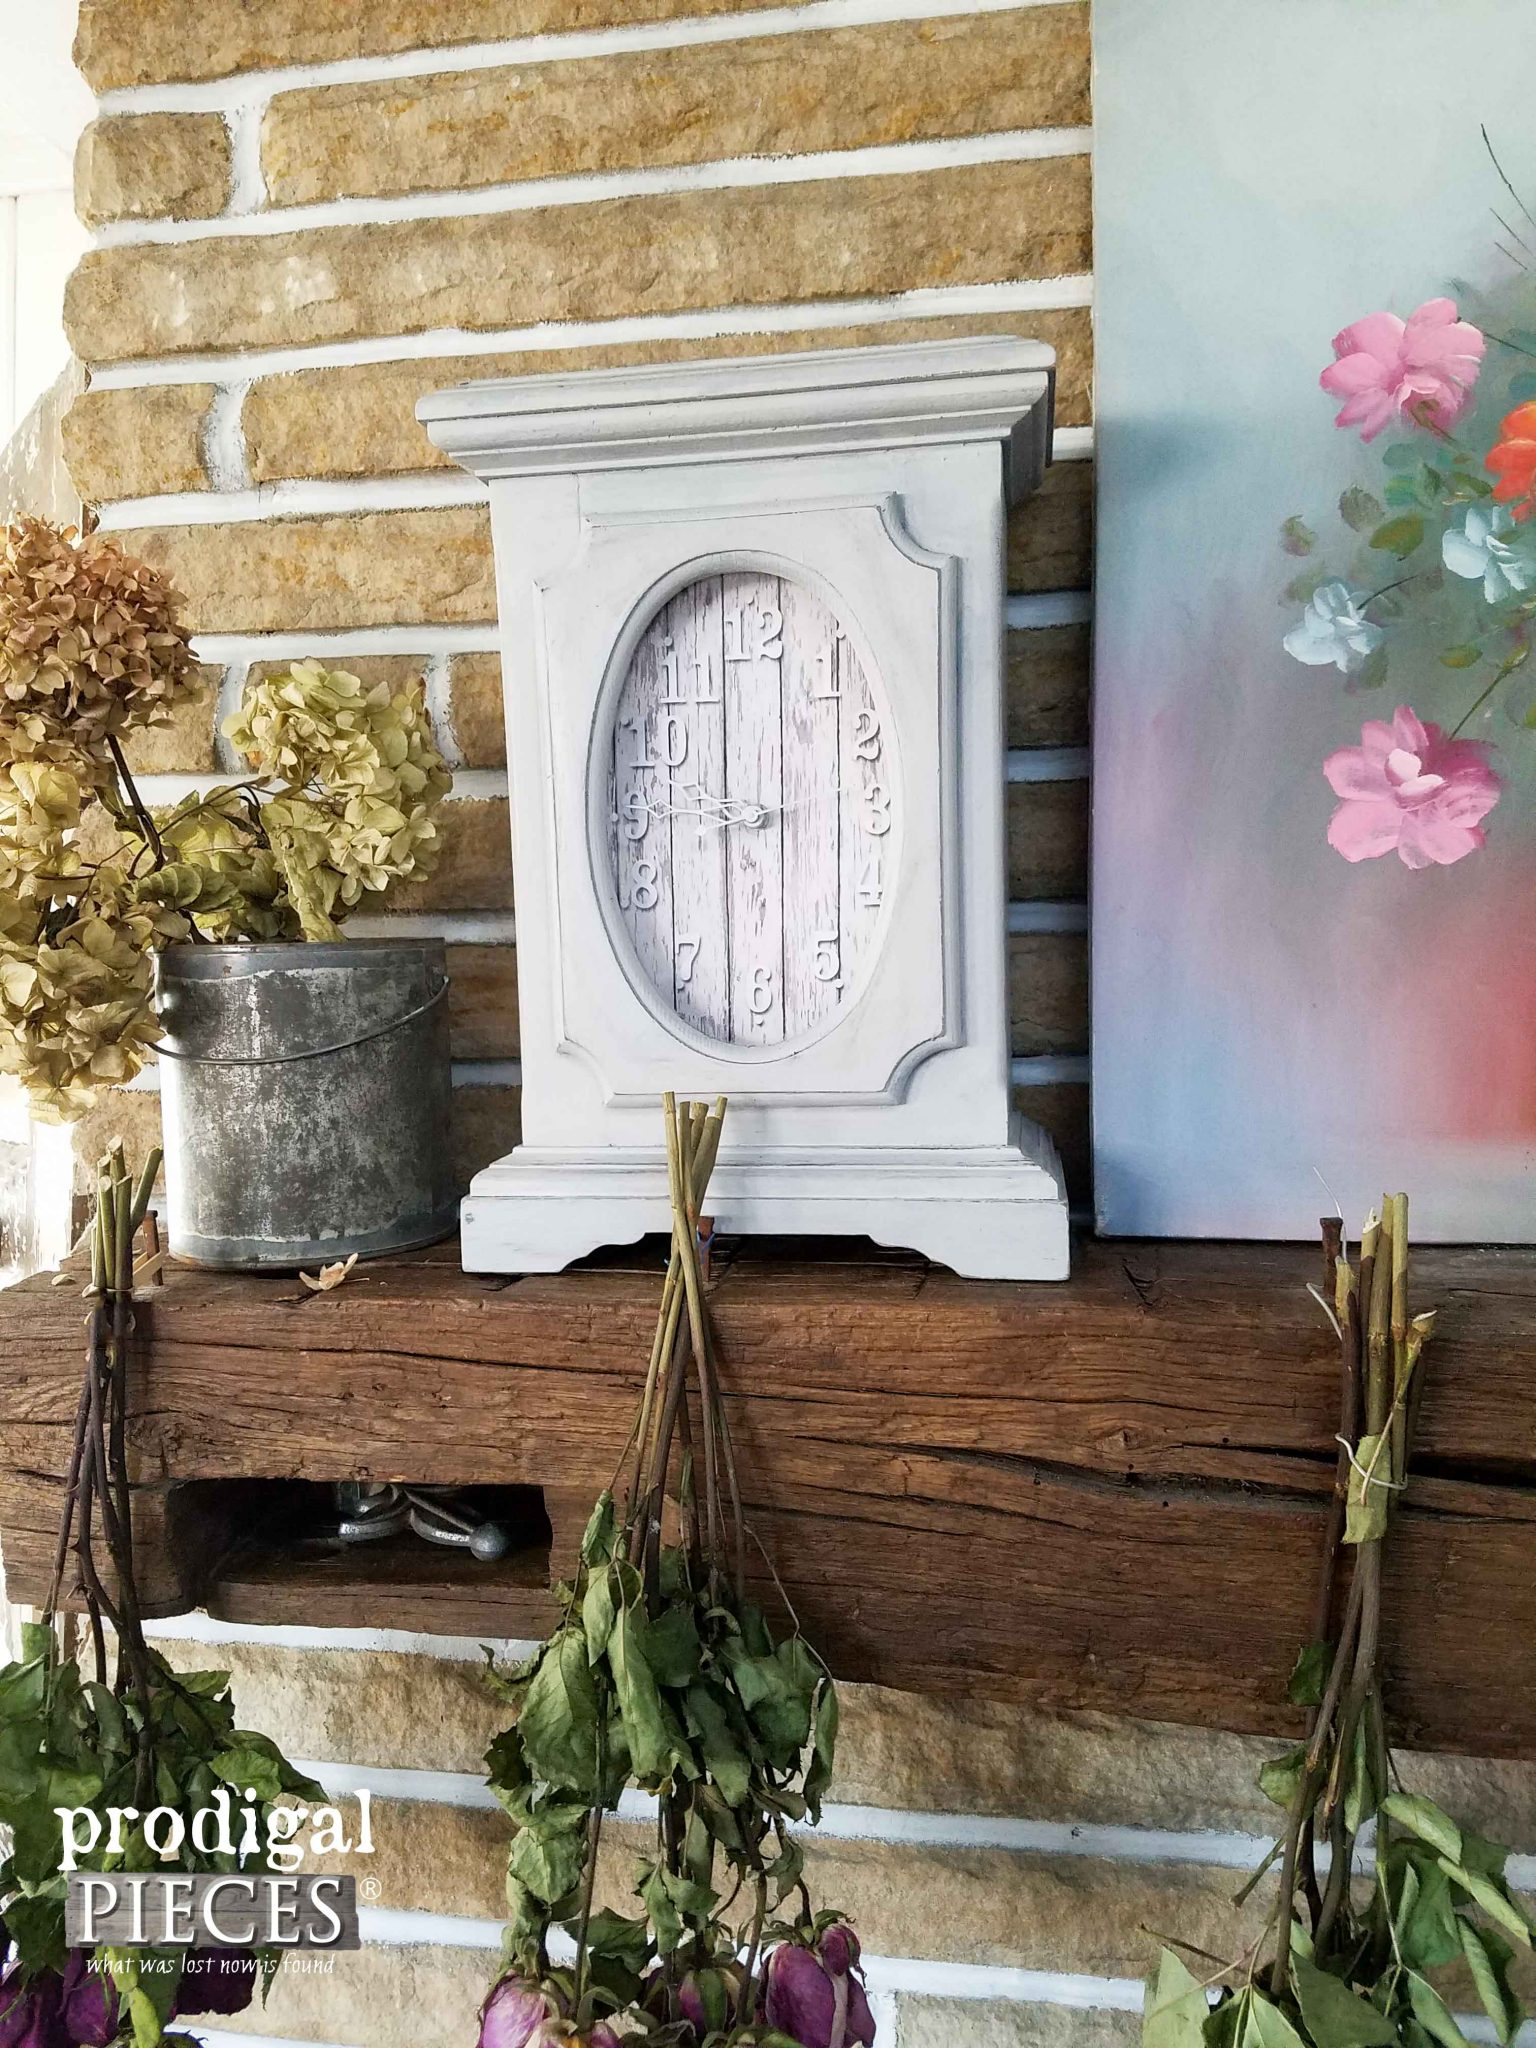 Farmhouse Mantel with Mantel Clock Makeover | Prodigal Pieces | prodigalpieces.com